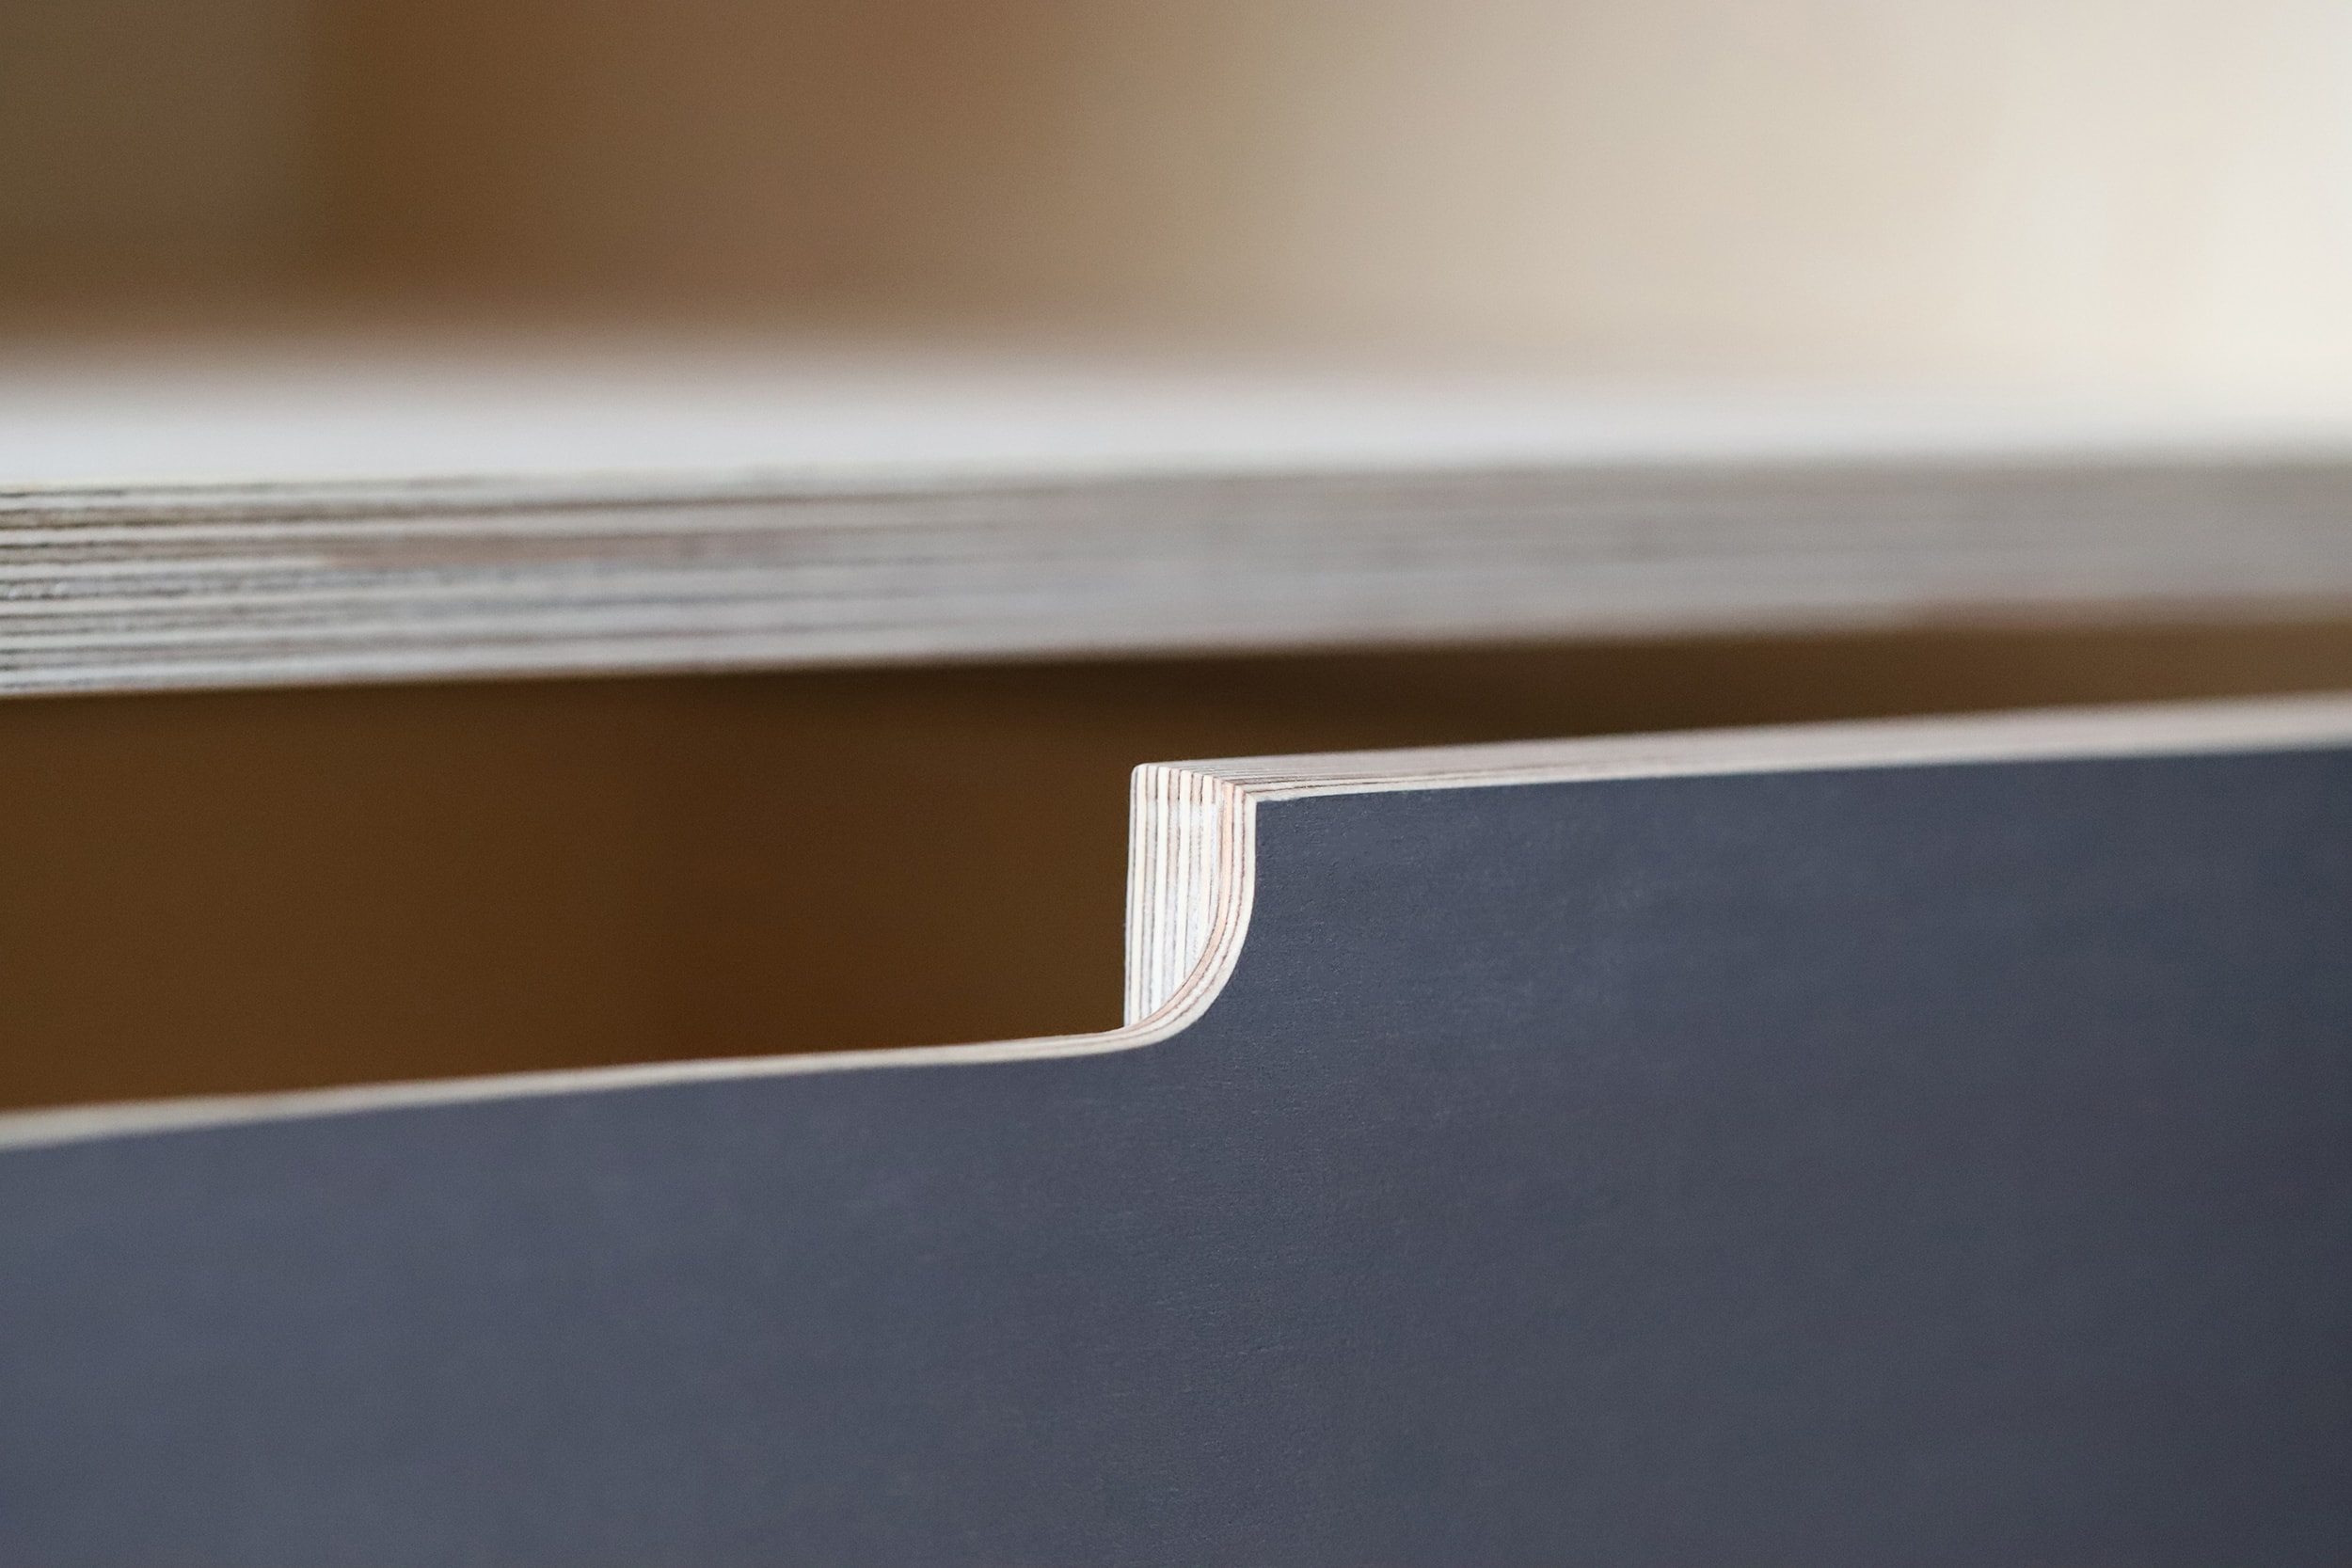 A handle details from Samir's bespoke plywood by Lozi in his home in Bexley